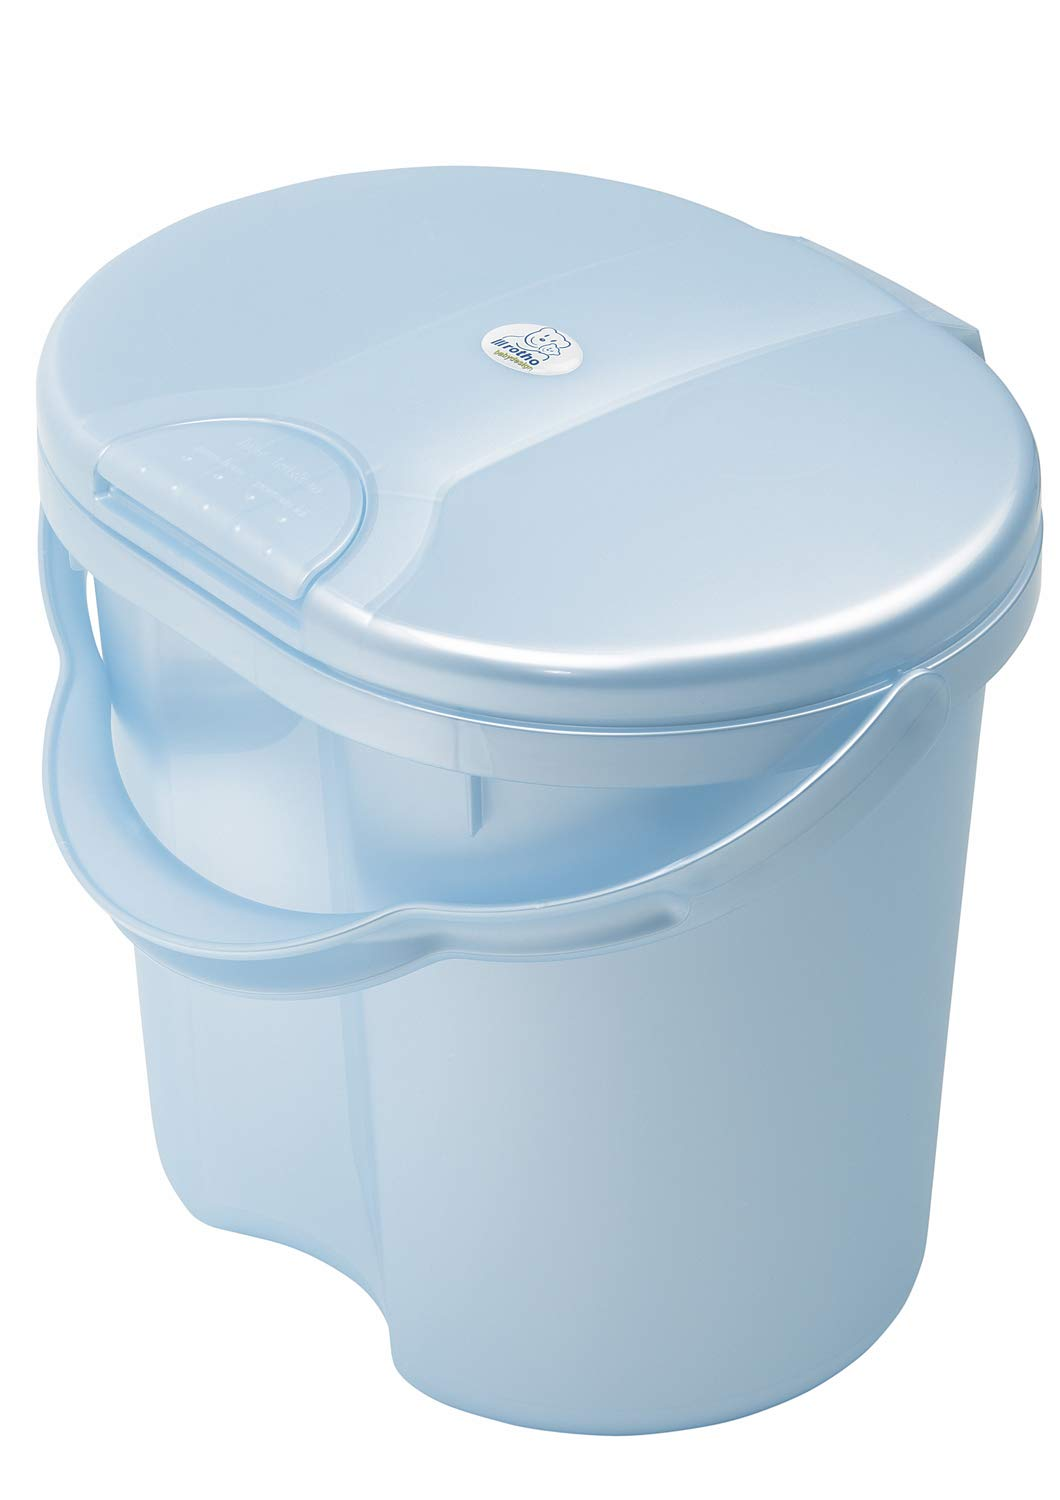 Rotho Baby Design Topline Nappy Pail, Baby Blue